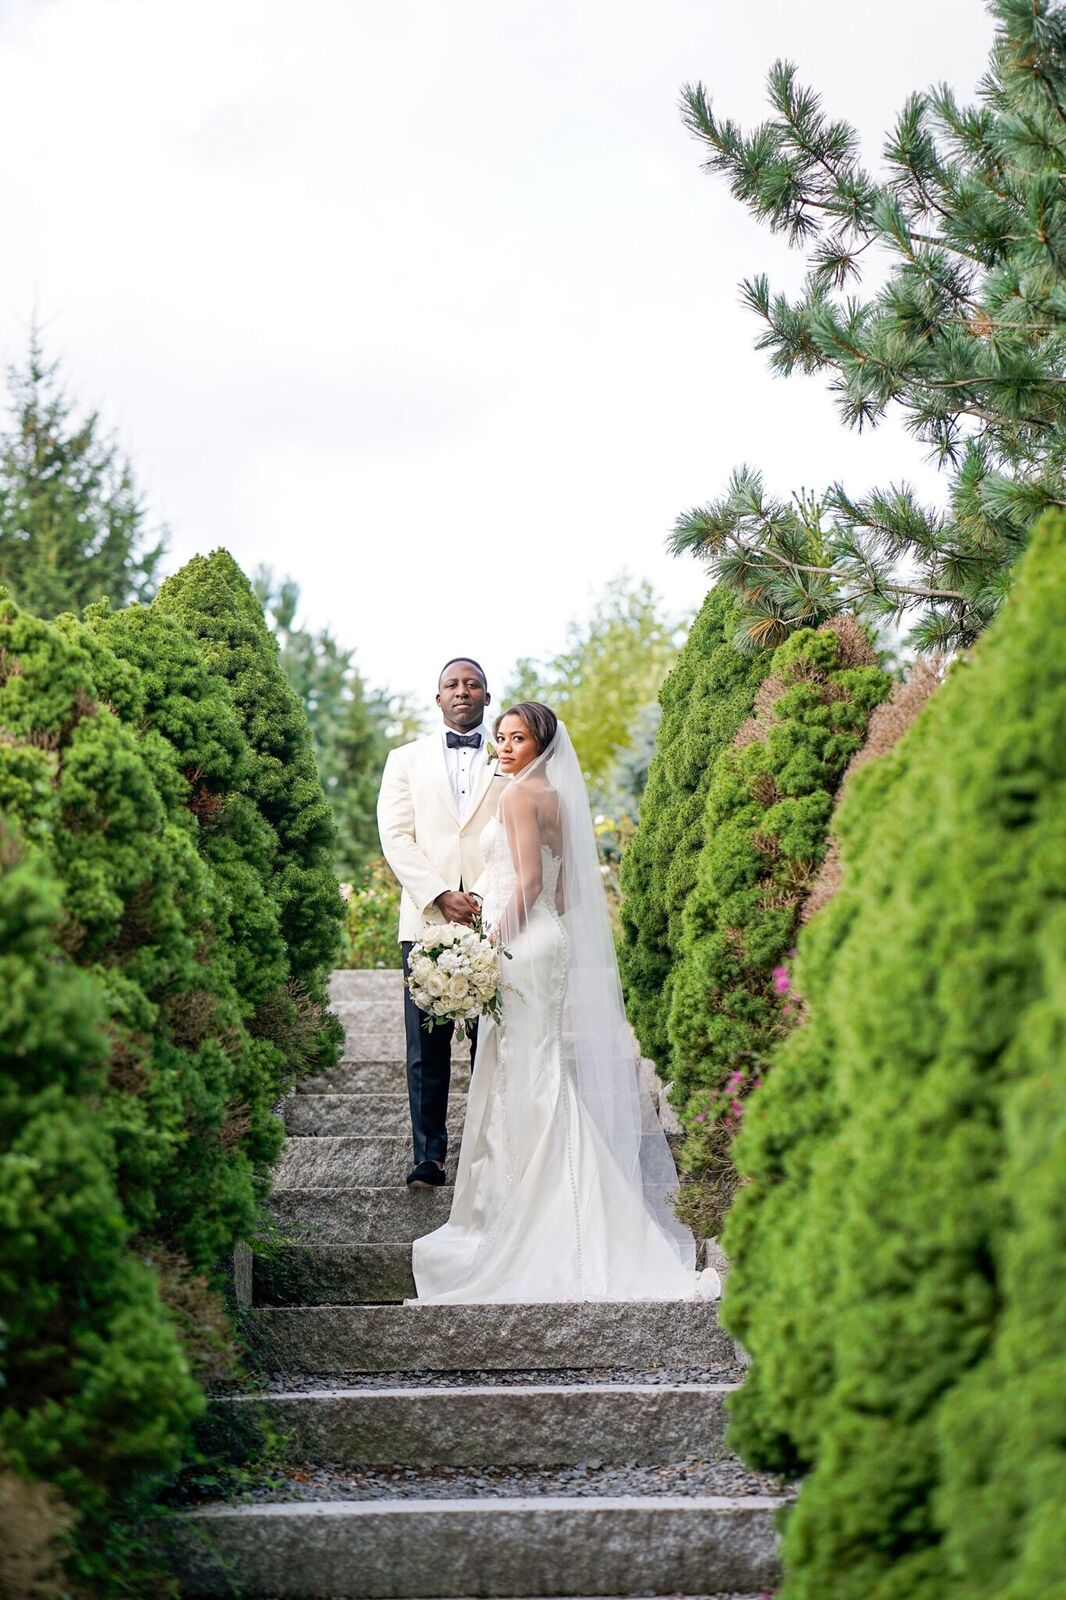 A breathtaking garden wedding at Grounds for Sculpture that we planned for this New York City couple. Read the blog to get the wedding day details and see the chic photos from this celebration!